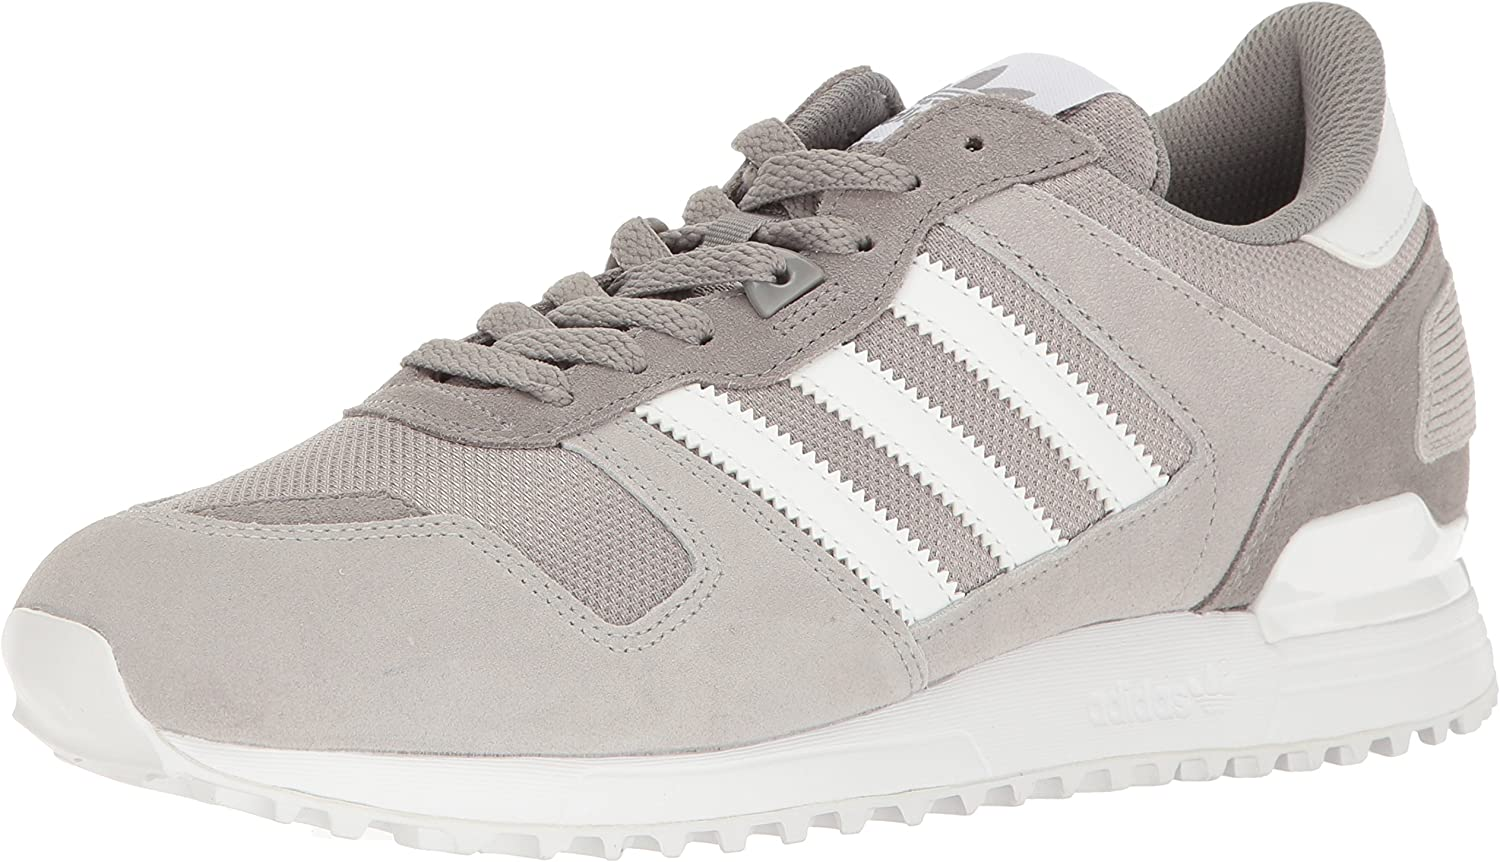 adidas Originals Men s ZX 700 Lifestyle Runner Sneaker